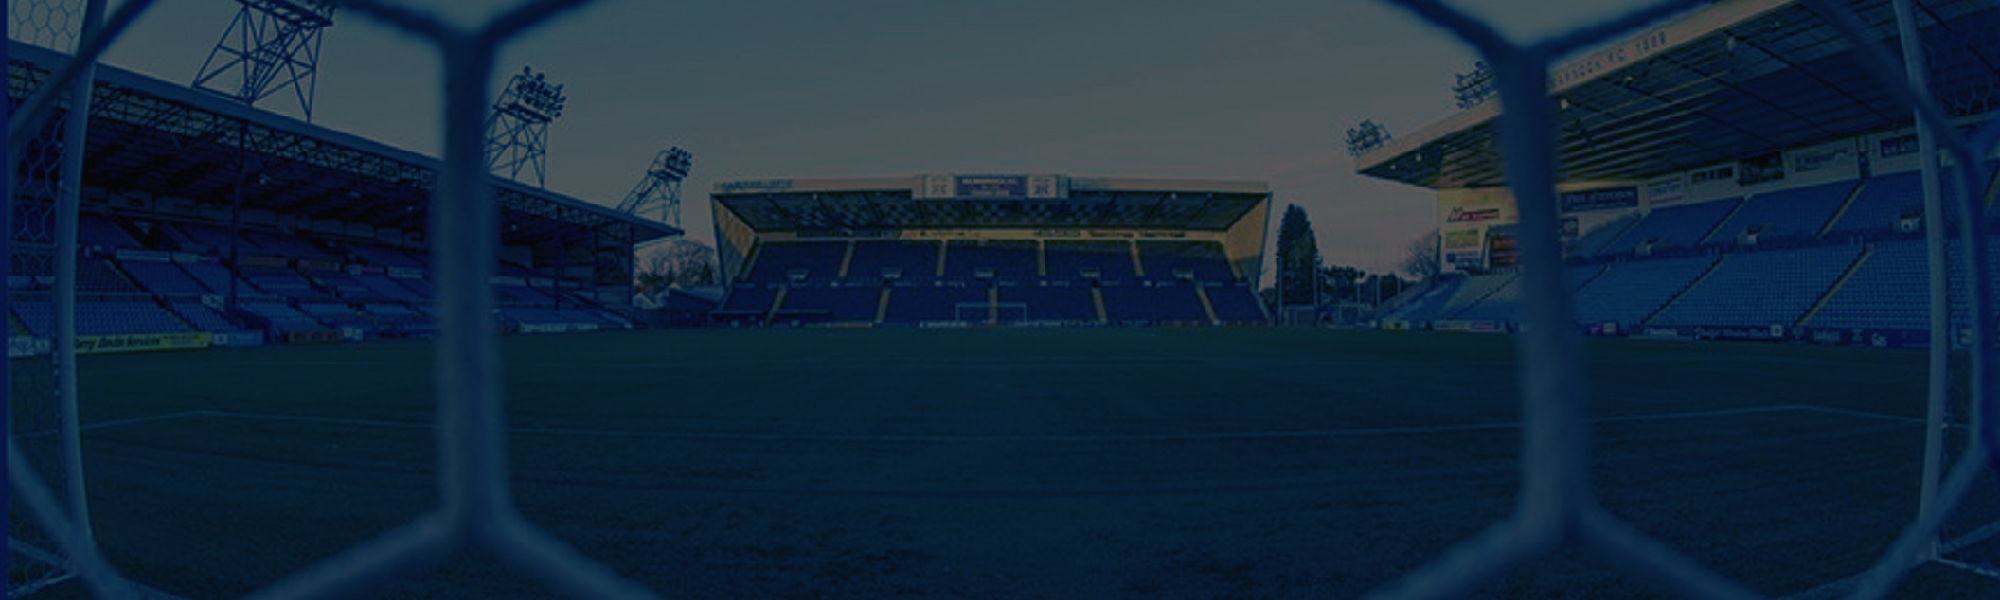 The BBSP Stadium, Rugby Park